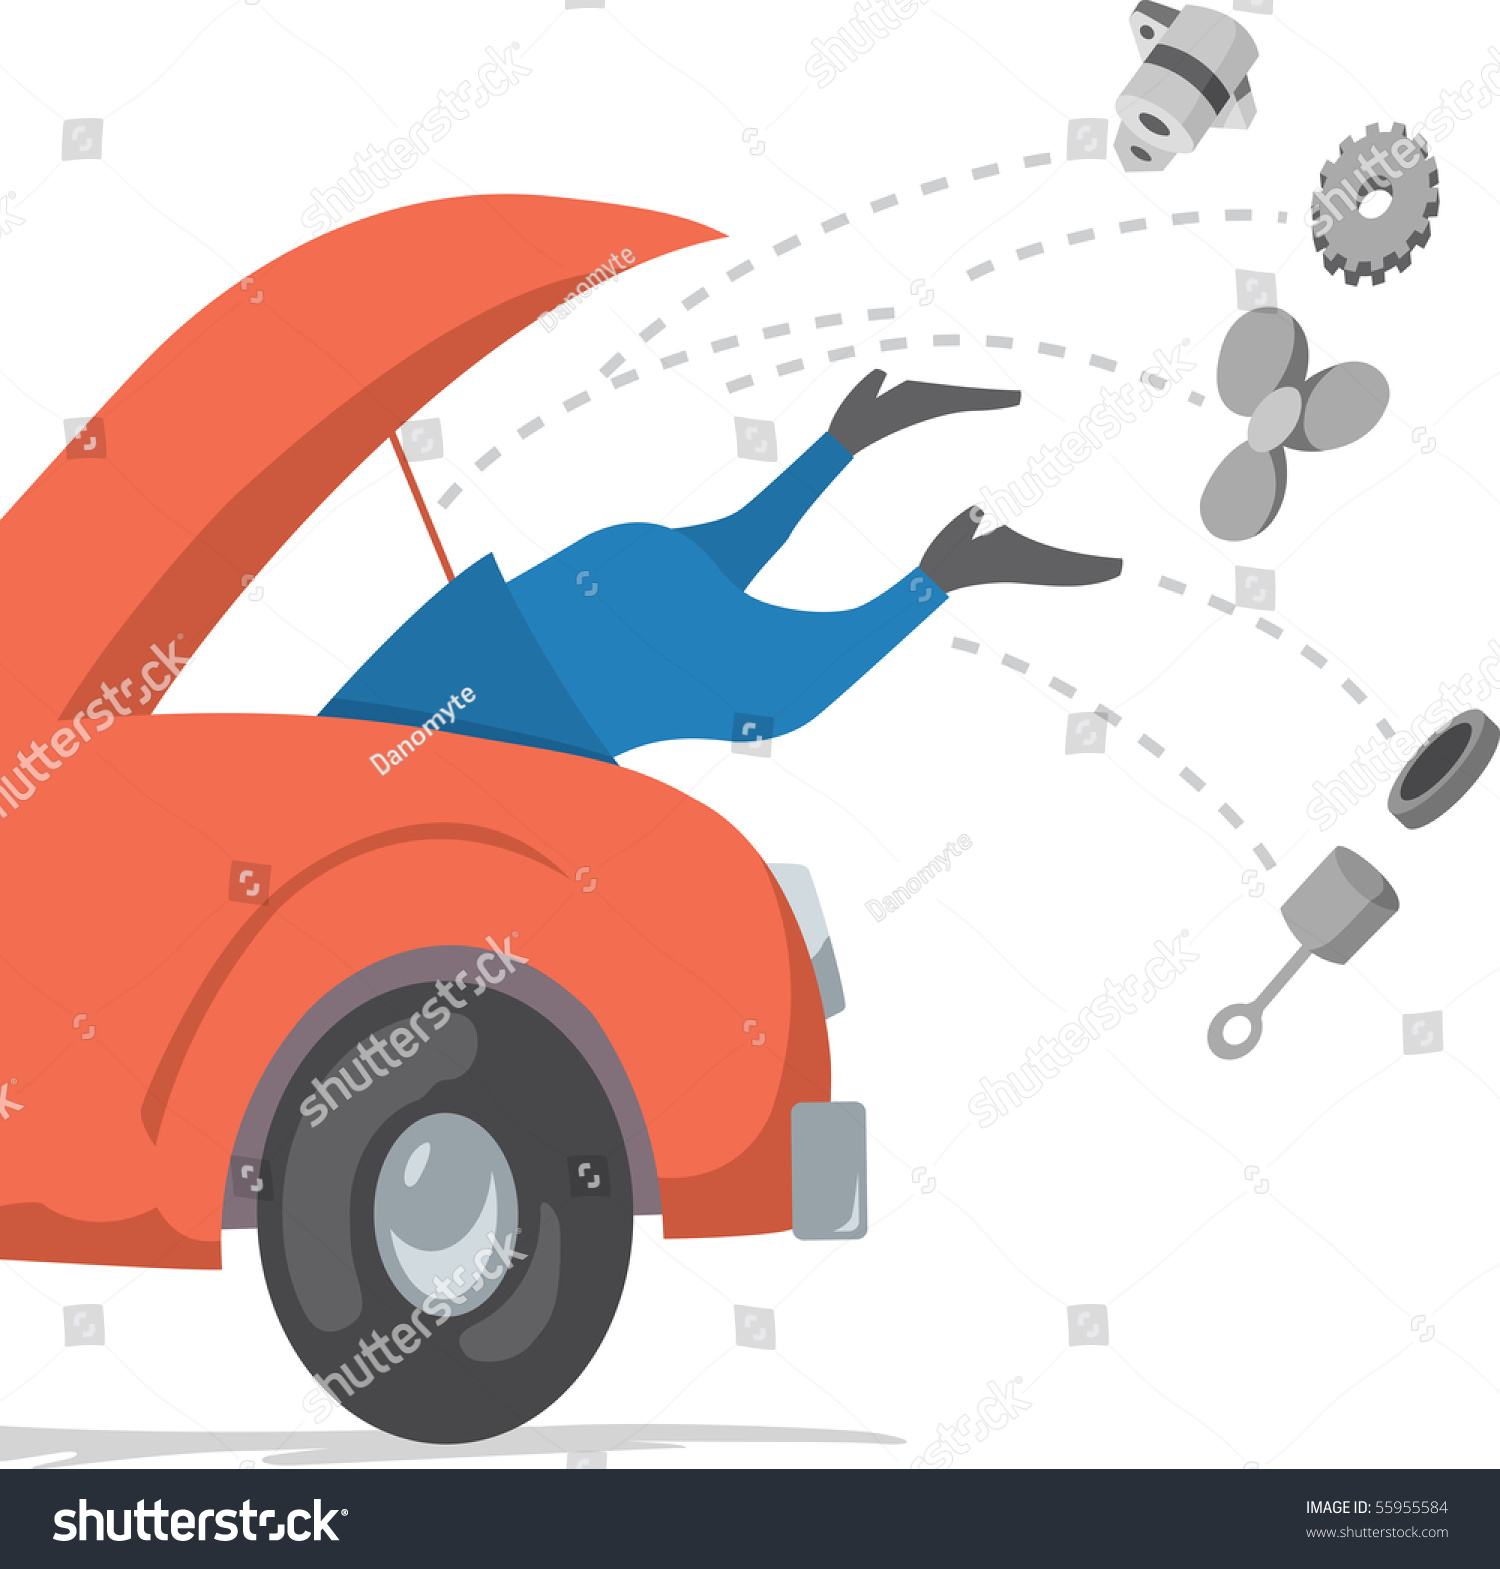 Man Under Hood, Attempting To Fix A Car. Stock Vector